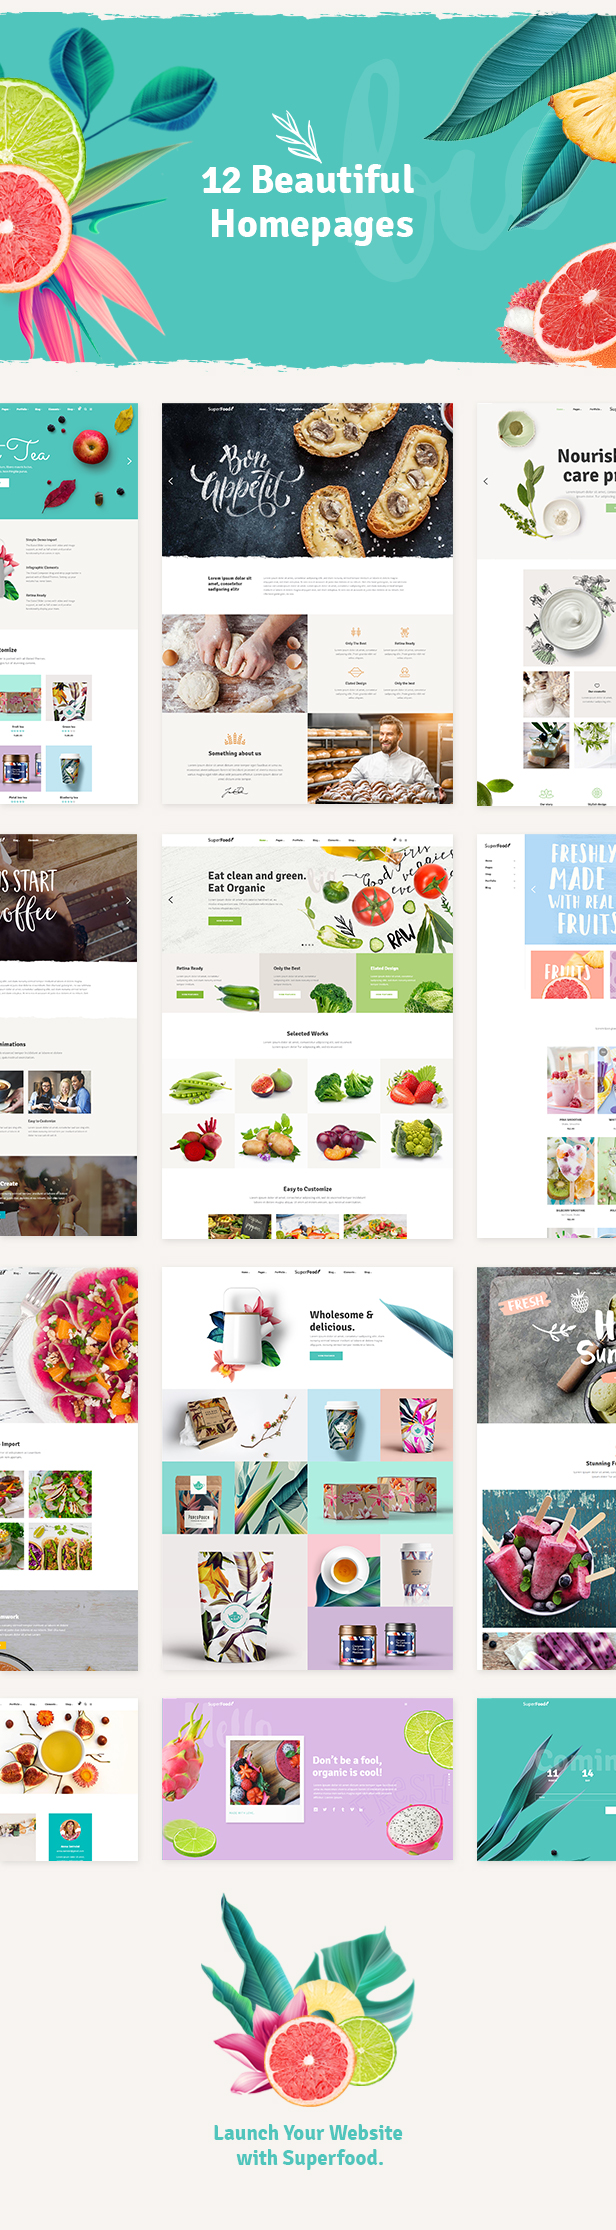 Latest Photo of  Superfood Organic Food Products Theme